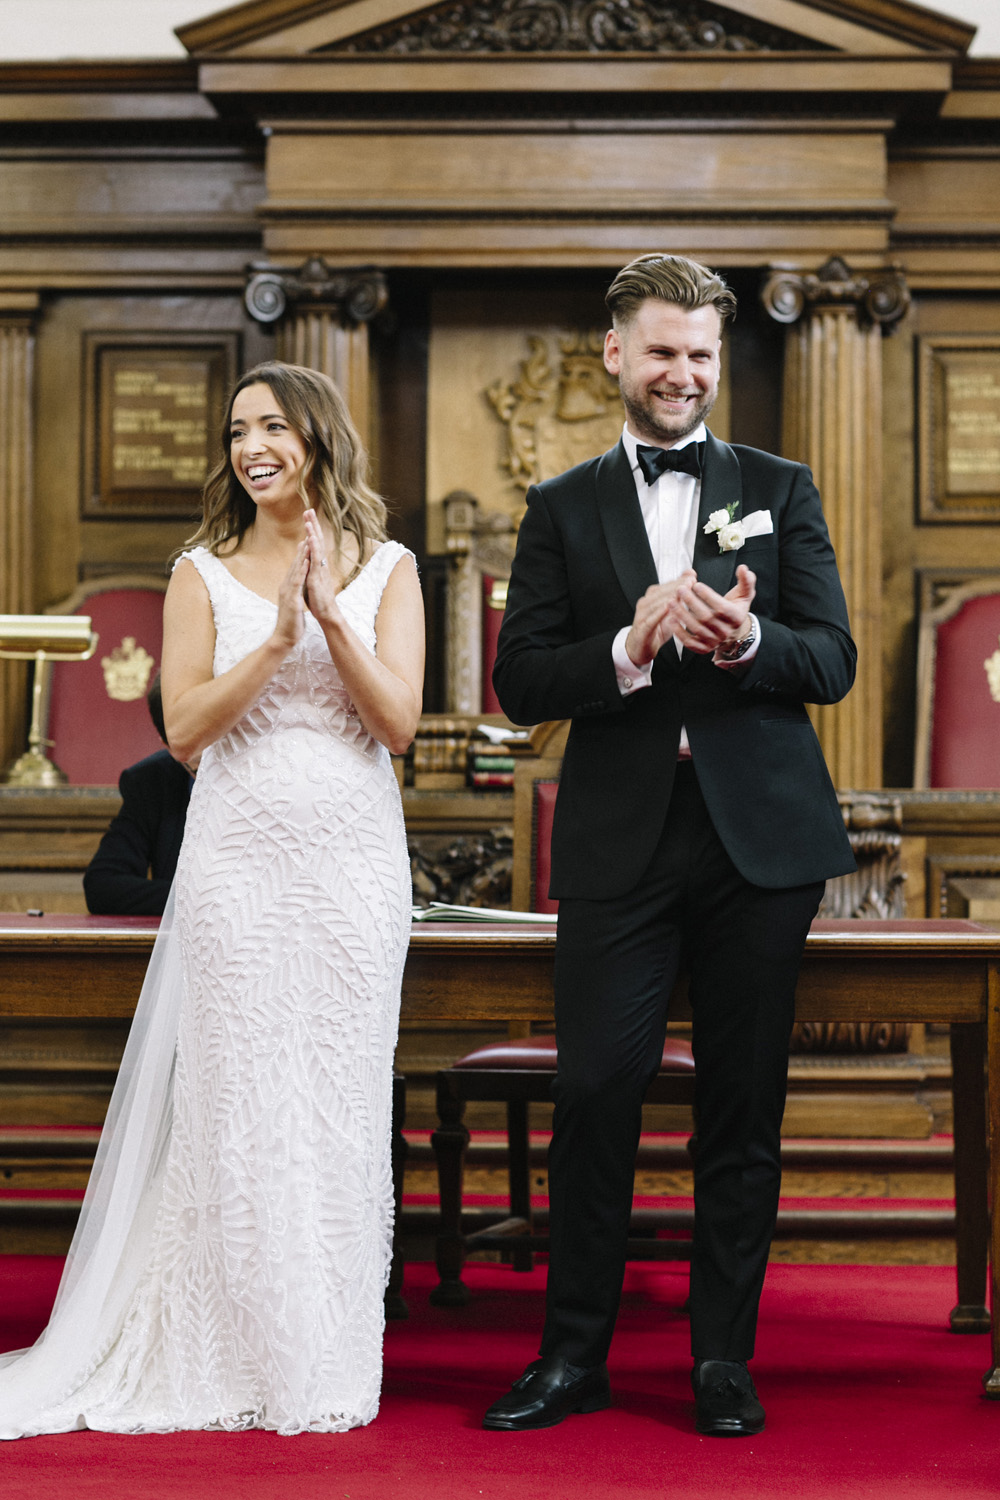 White Bridesmaids Dresses And Black Tuxedos For Sophisticated Somerset House Wedding